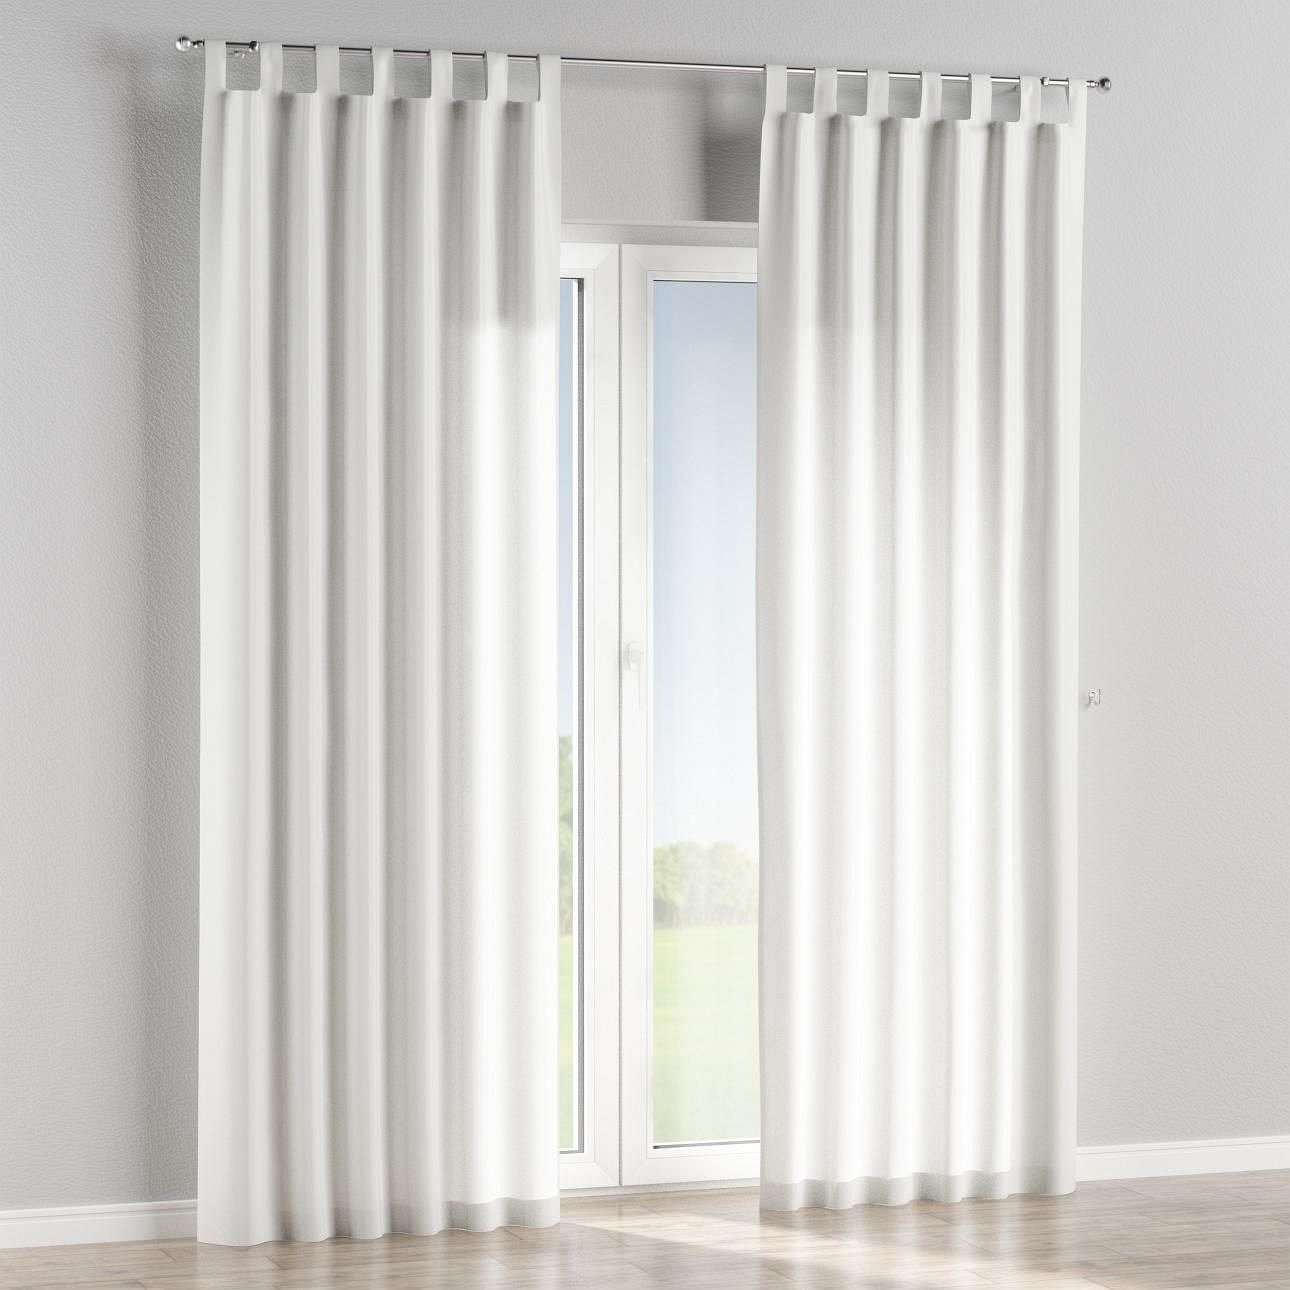 Tab top curtains in collection Nordic, fabric: 630-80